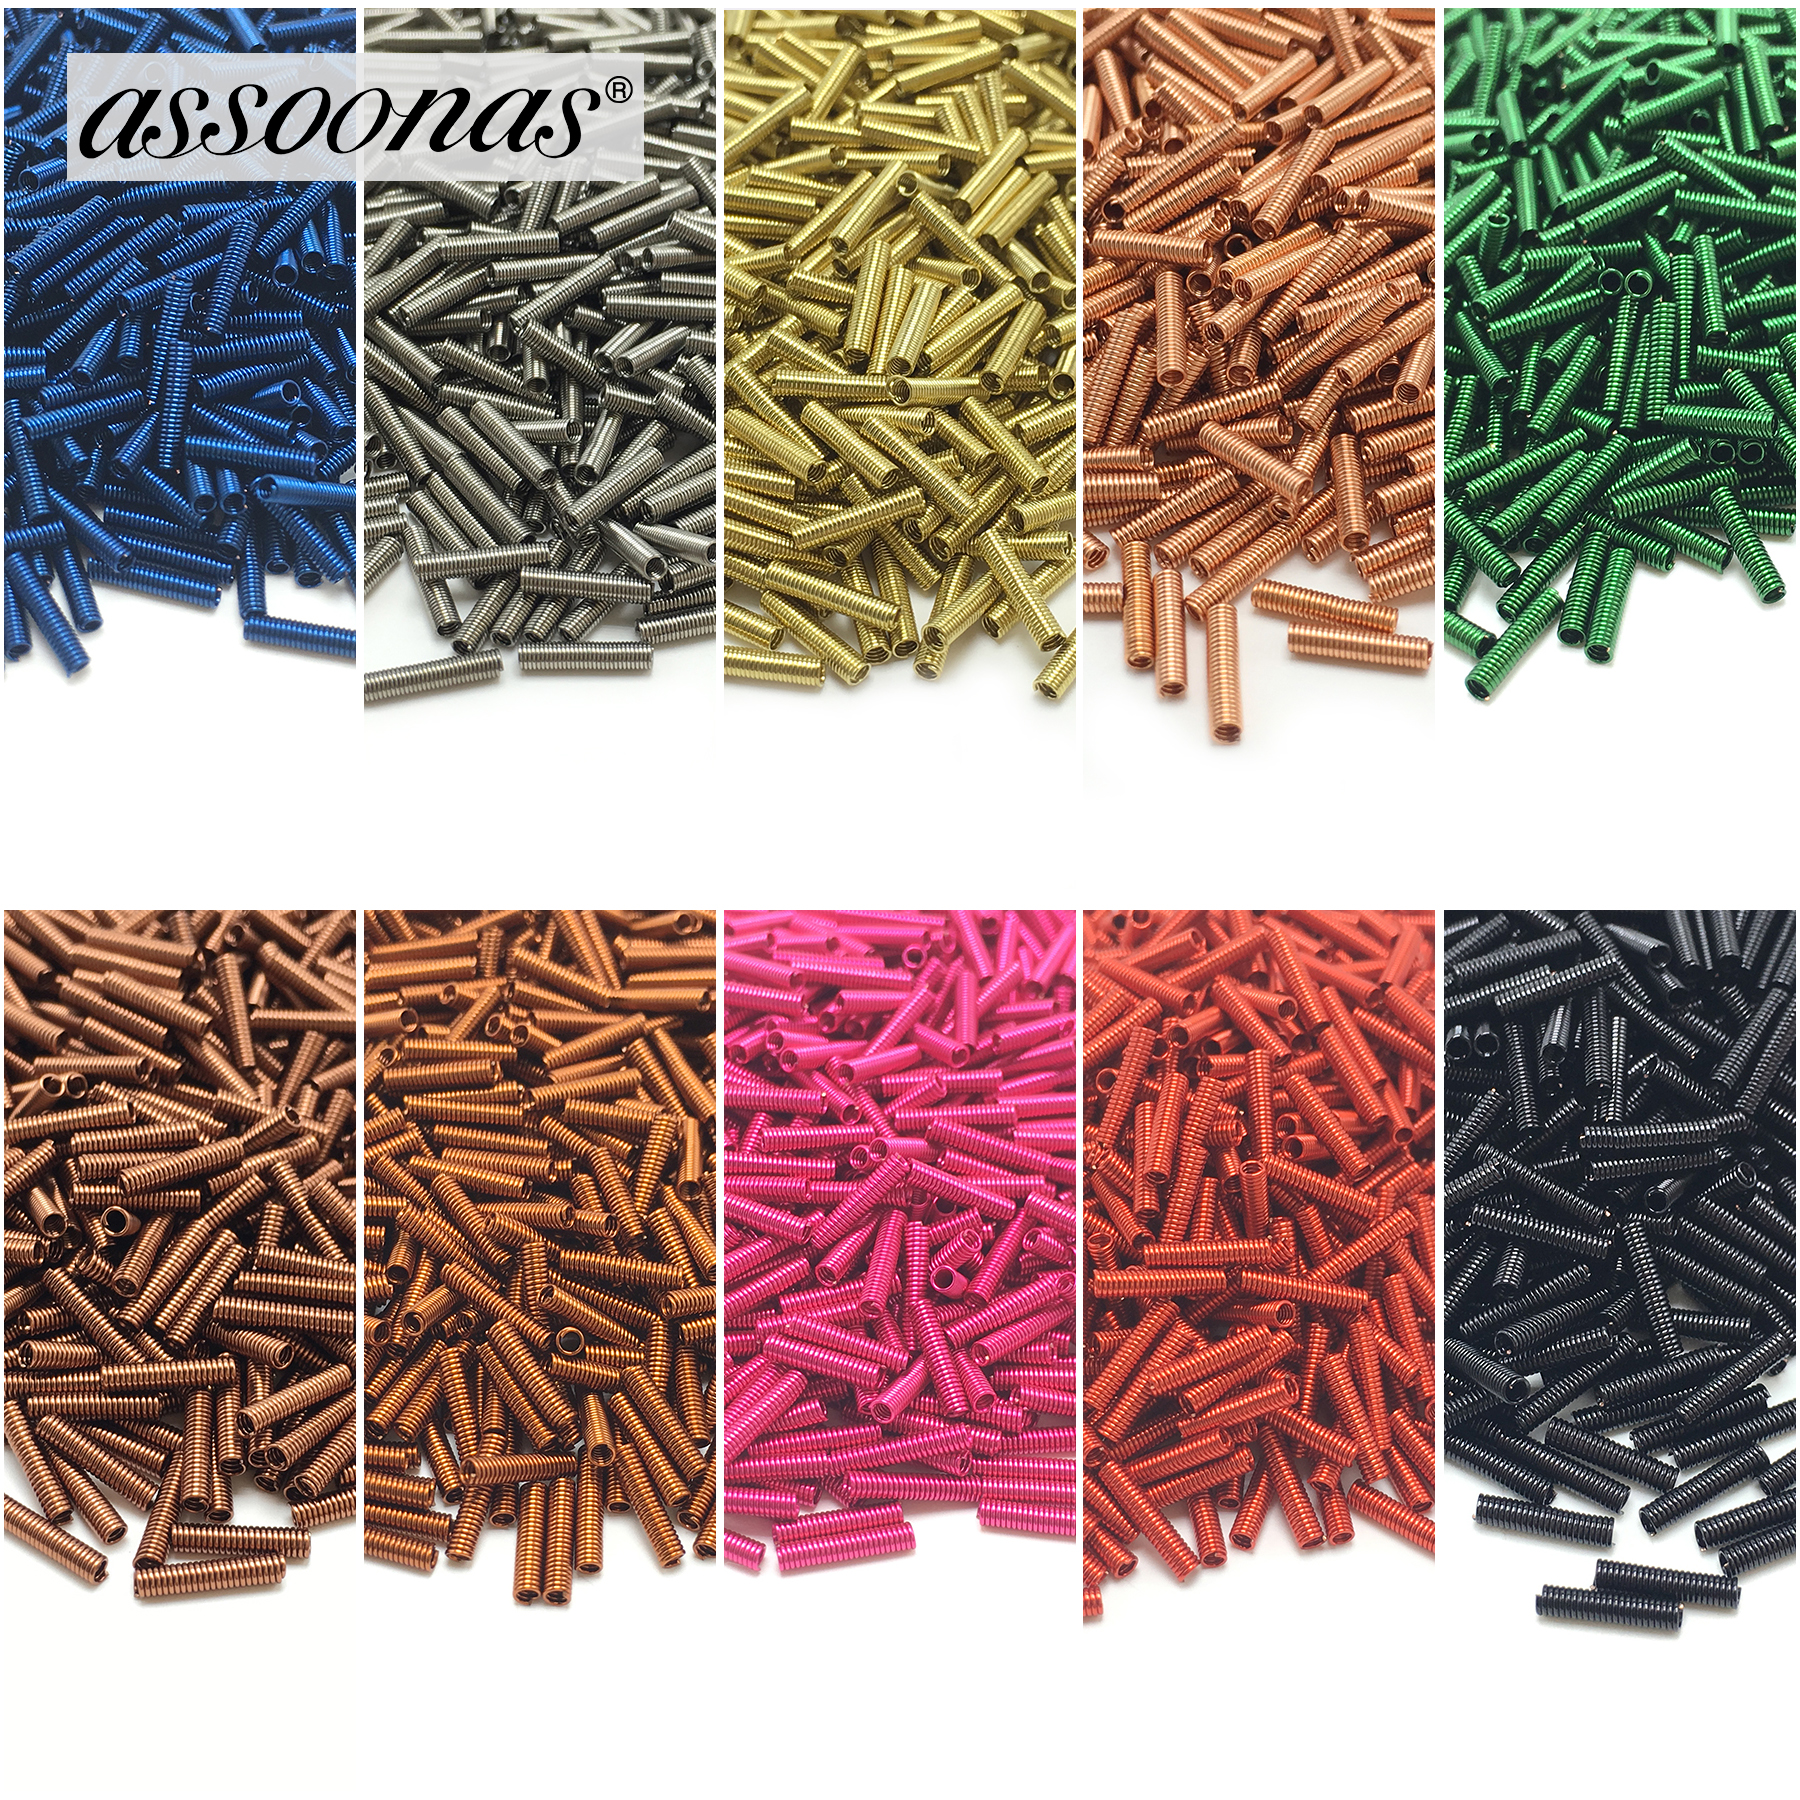 Assoonas M131,0.13cm*0.6cm,jewelry Accessories,jewelry Findings,accessory Parts,hand Made,diy,springs Assortment,jewelry Making